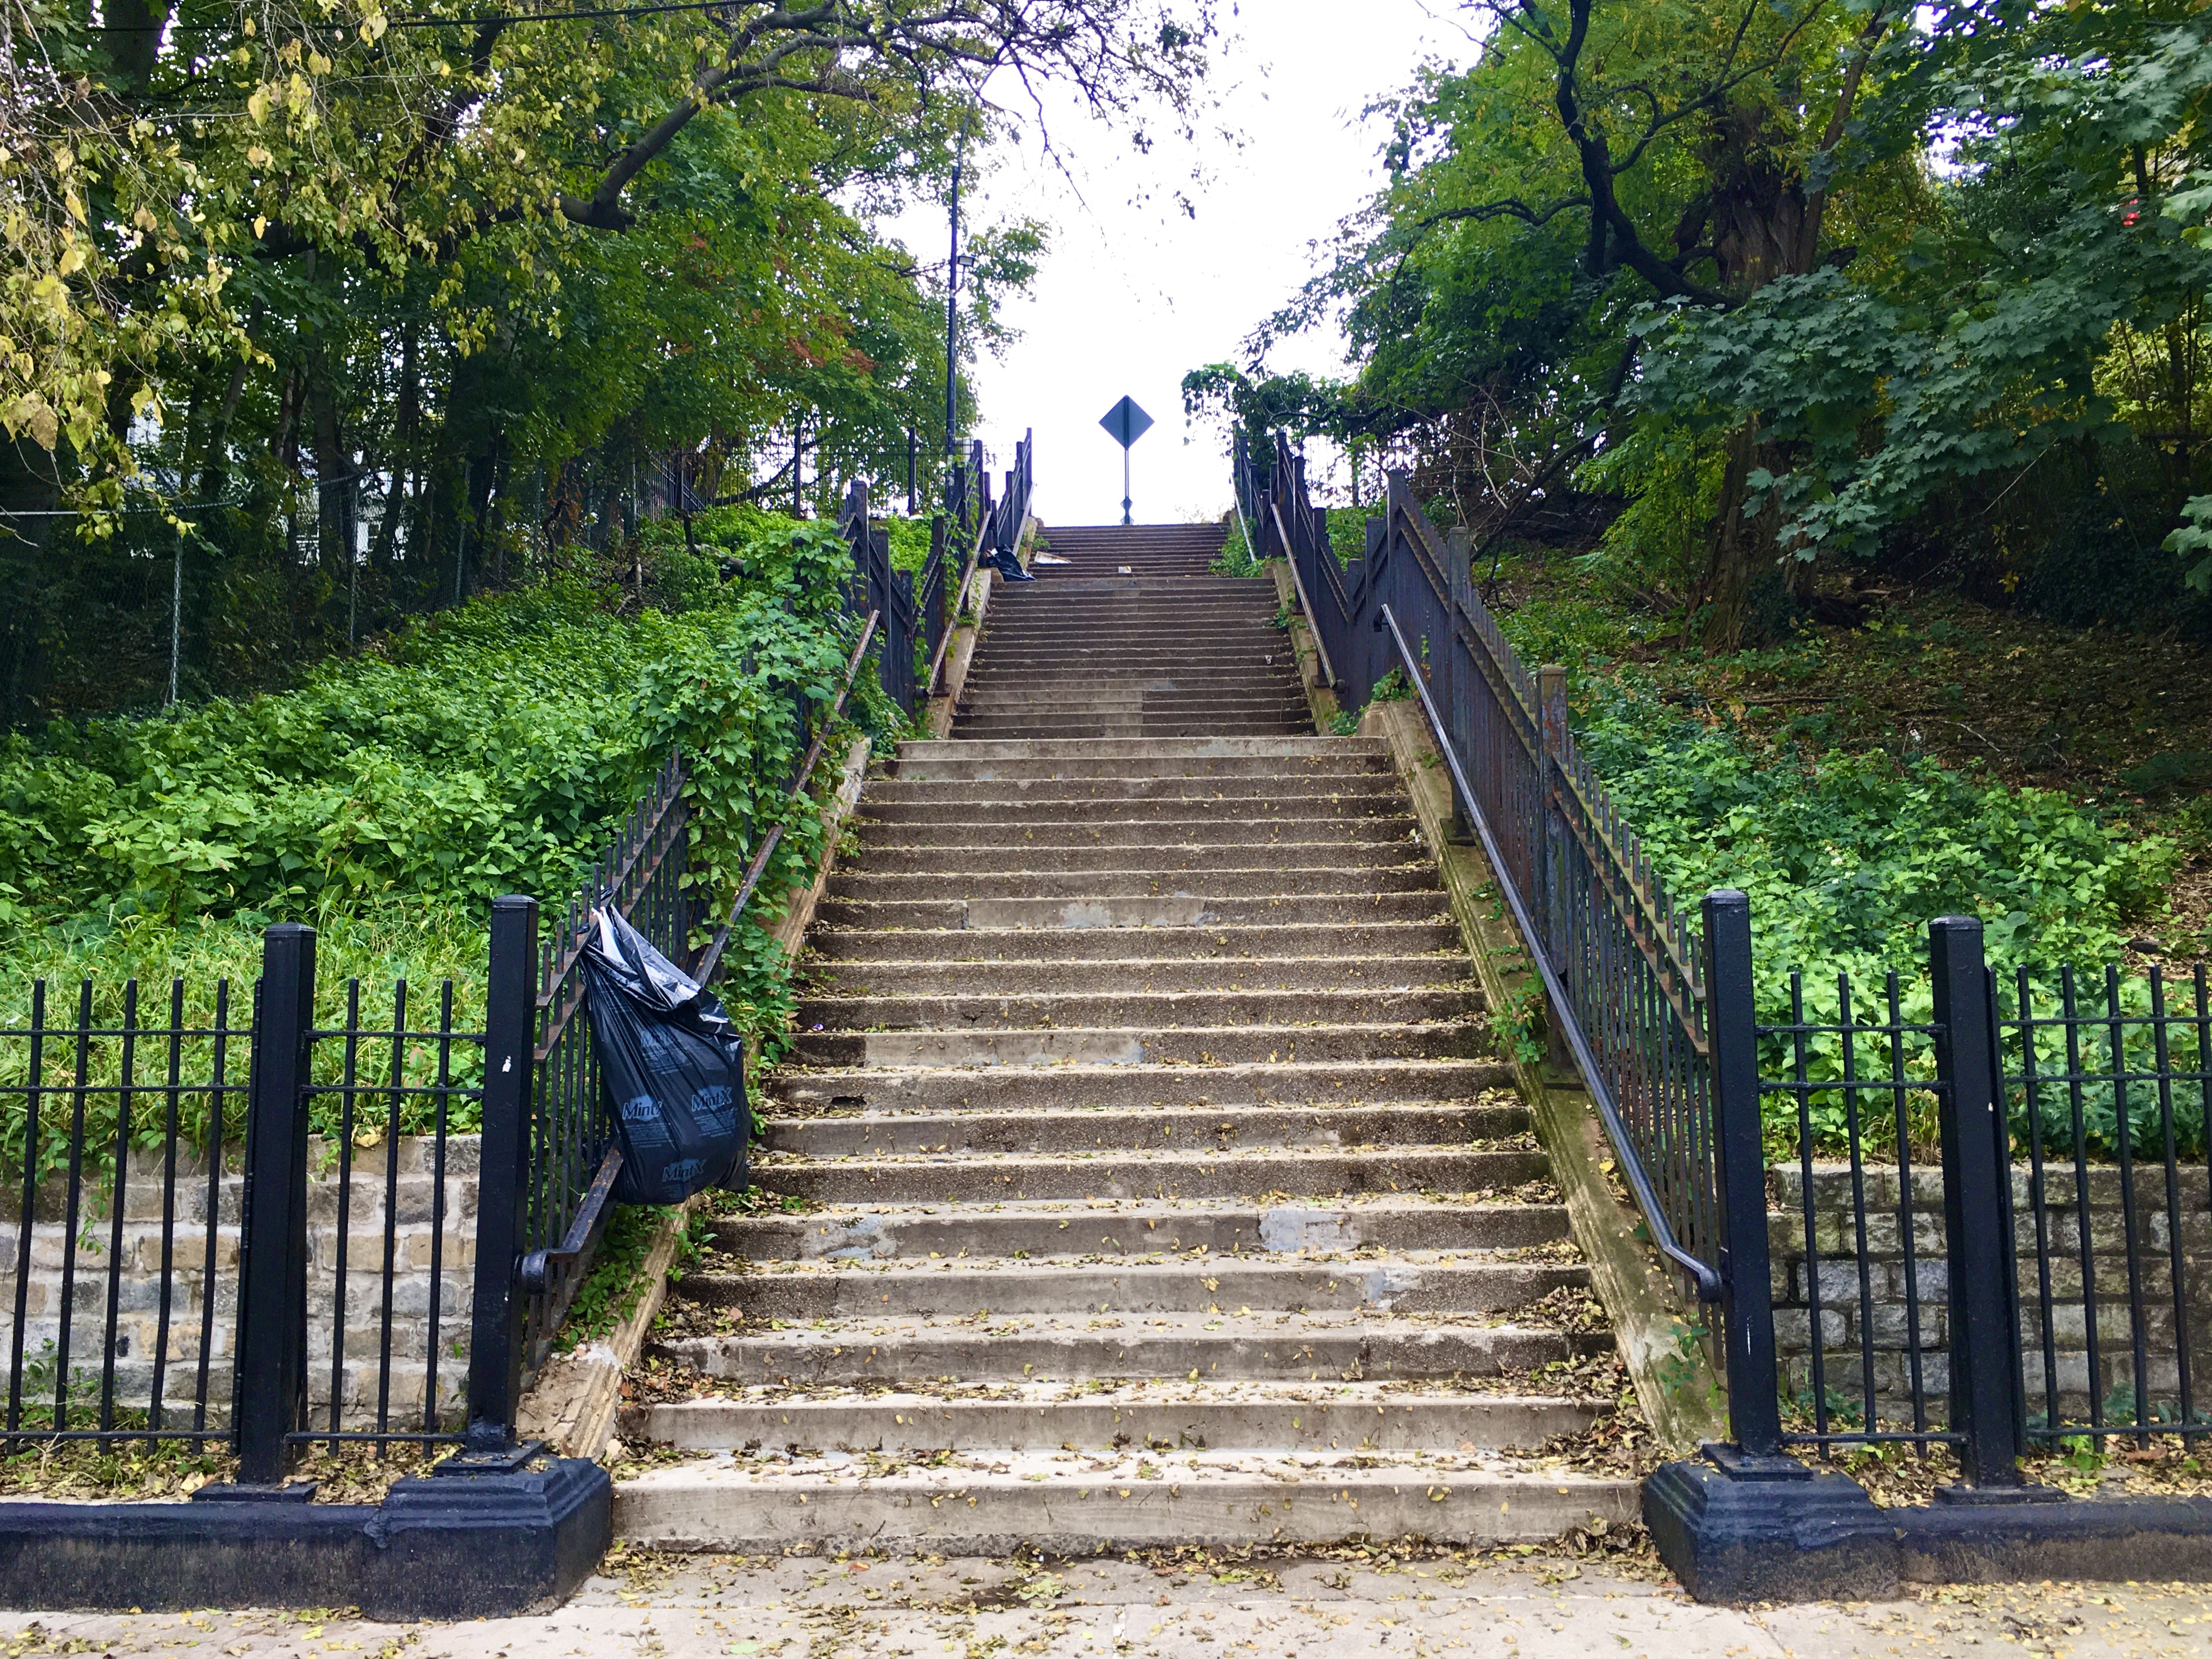 Here's one of Bay Ridge's step streets, where you can dance like the Joker without sharing the stairs with a crowd. Eagle photo by Lore Croghan